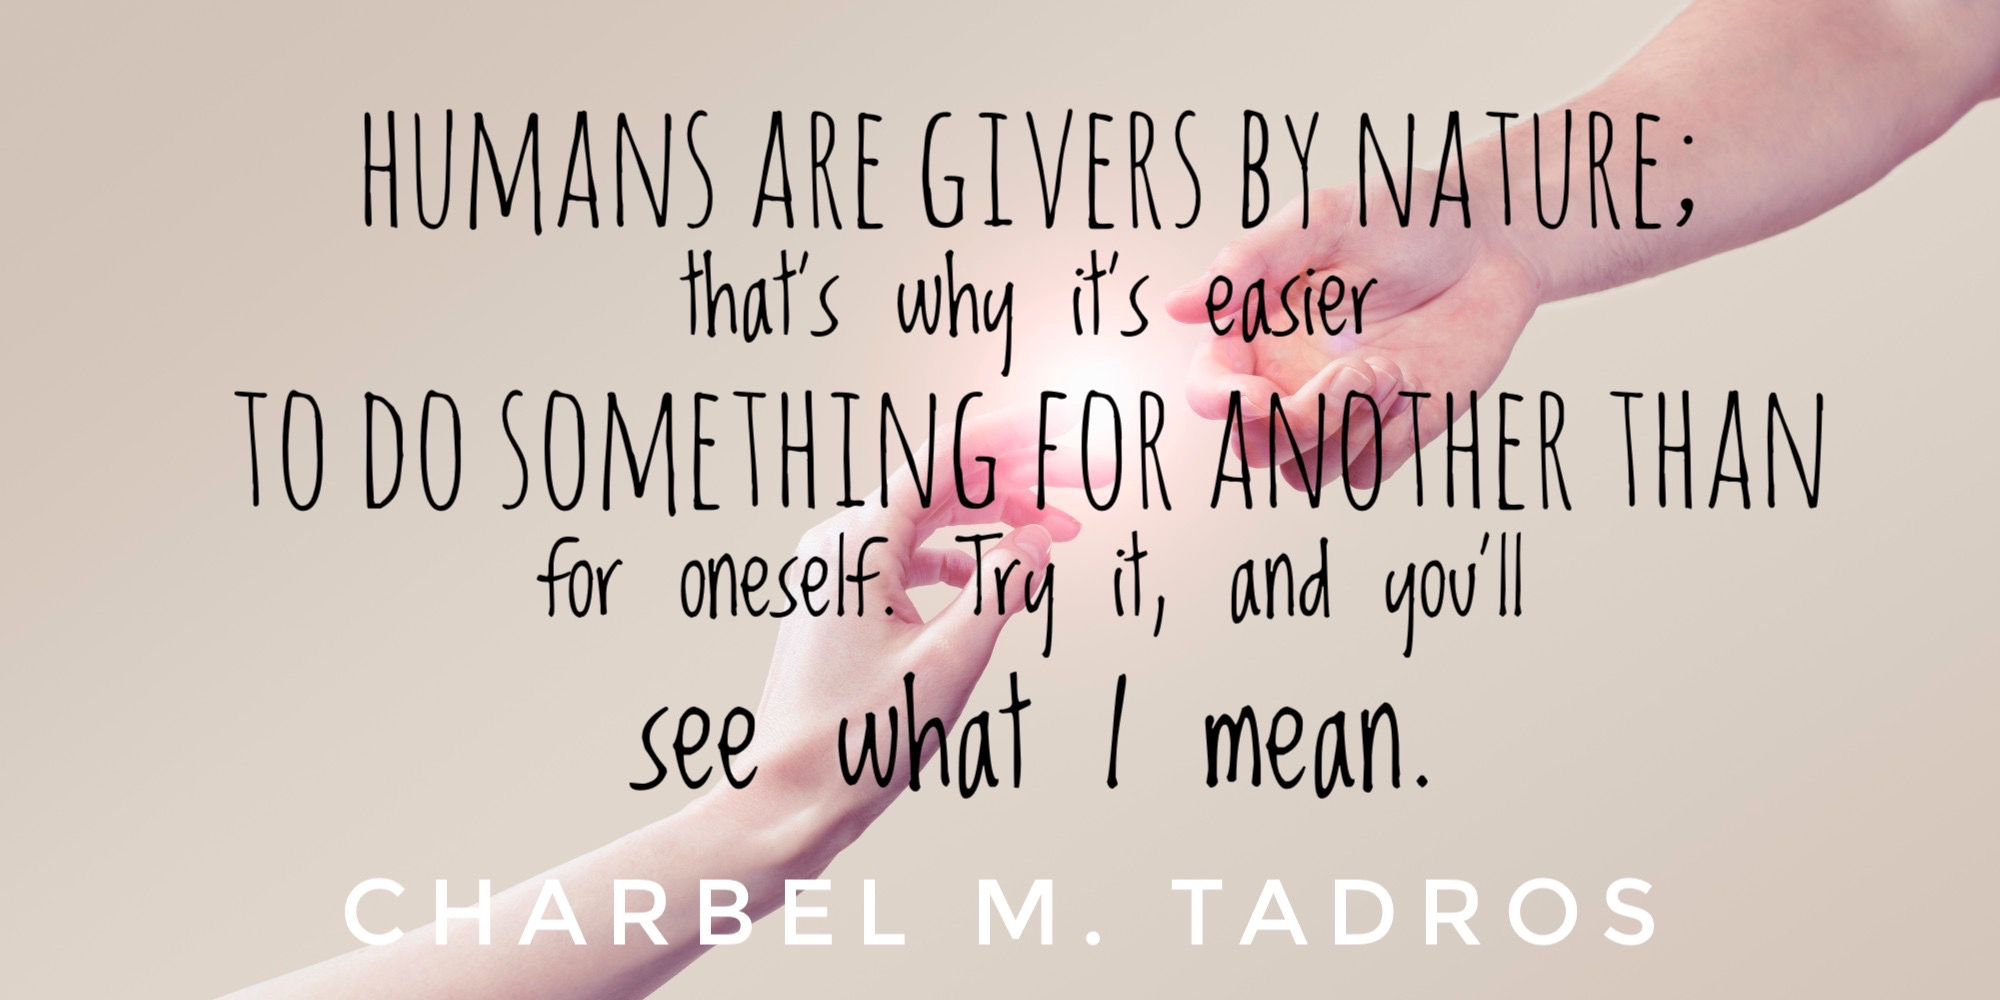 Humans are givers by nature. That's why it's easier to do something for another than for oneself. Try it, and you'll see what I mean.